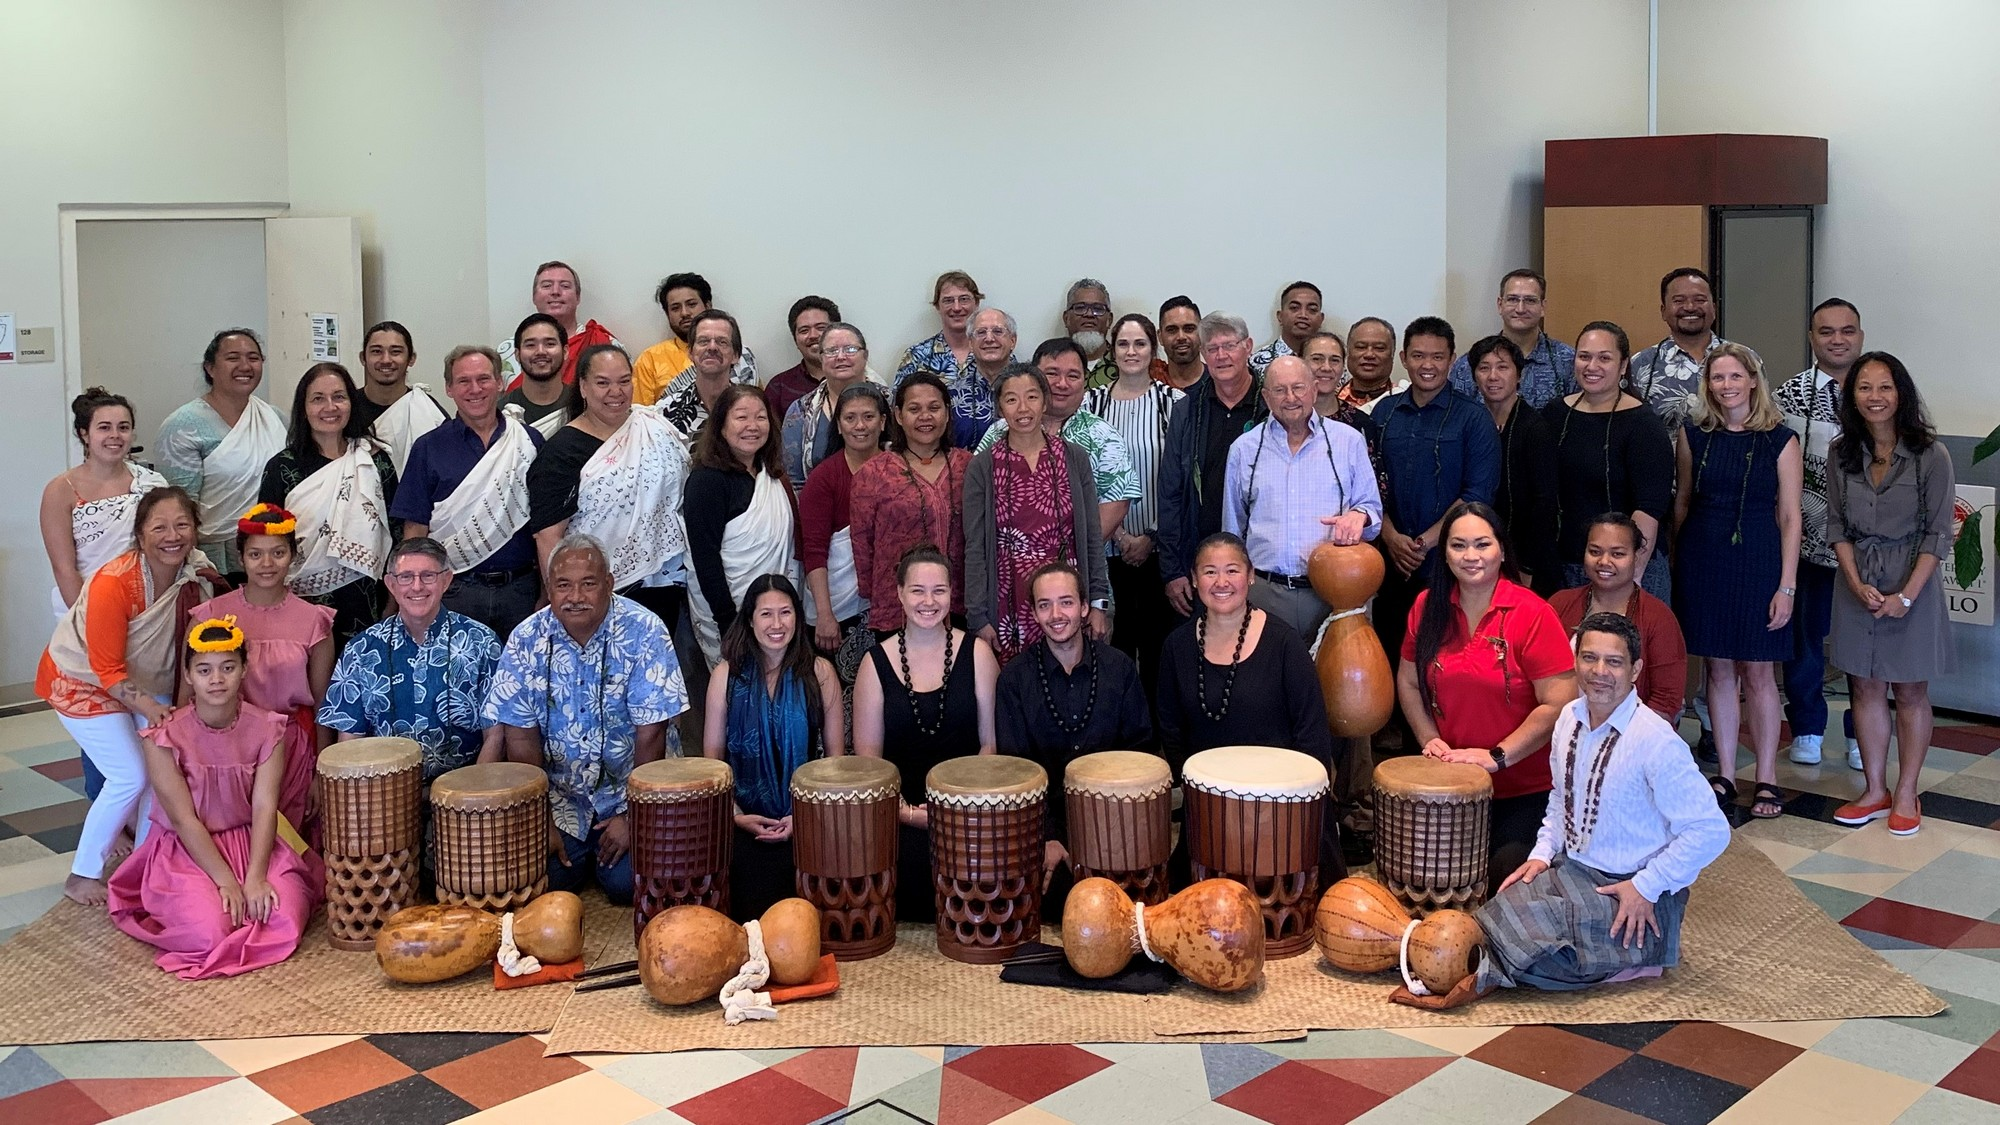 Group photo with delegates and kīpaepae welina participants, group is behind pahu and ipu, standing and sitting on a lauhala mat.